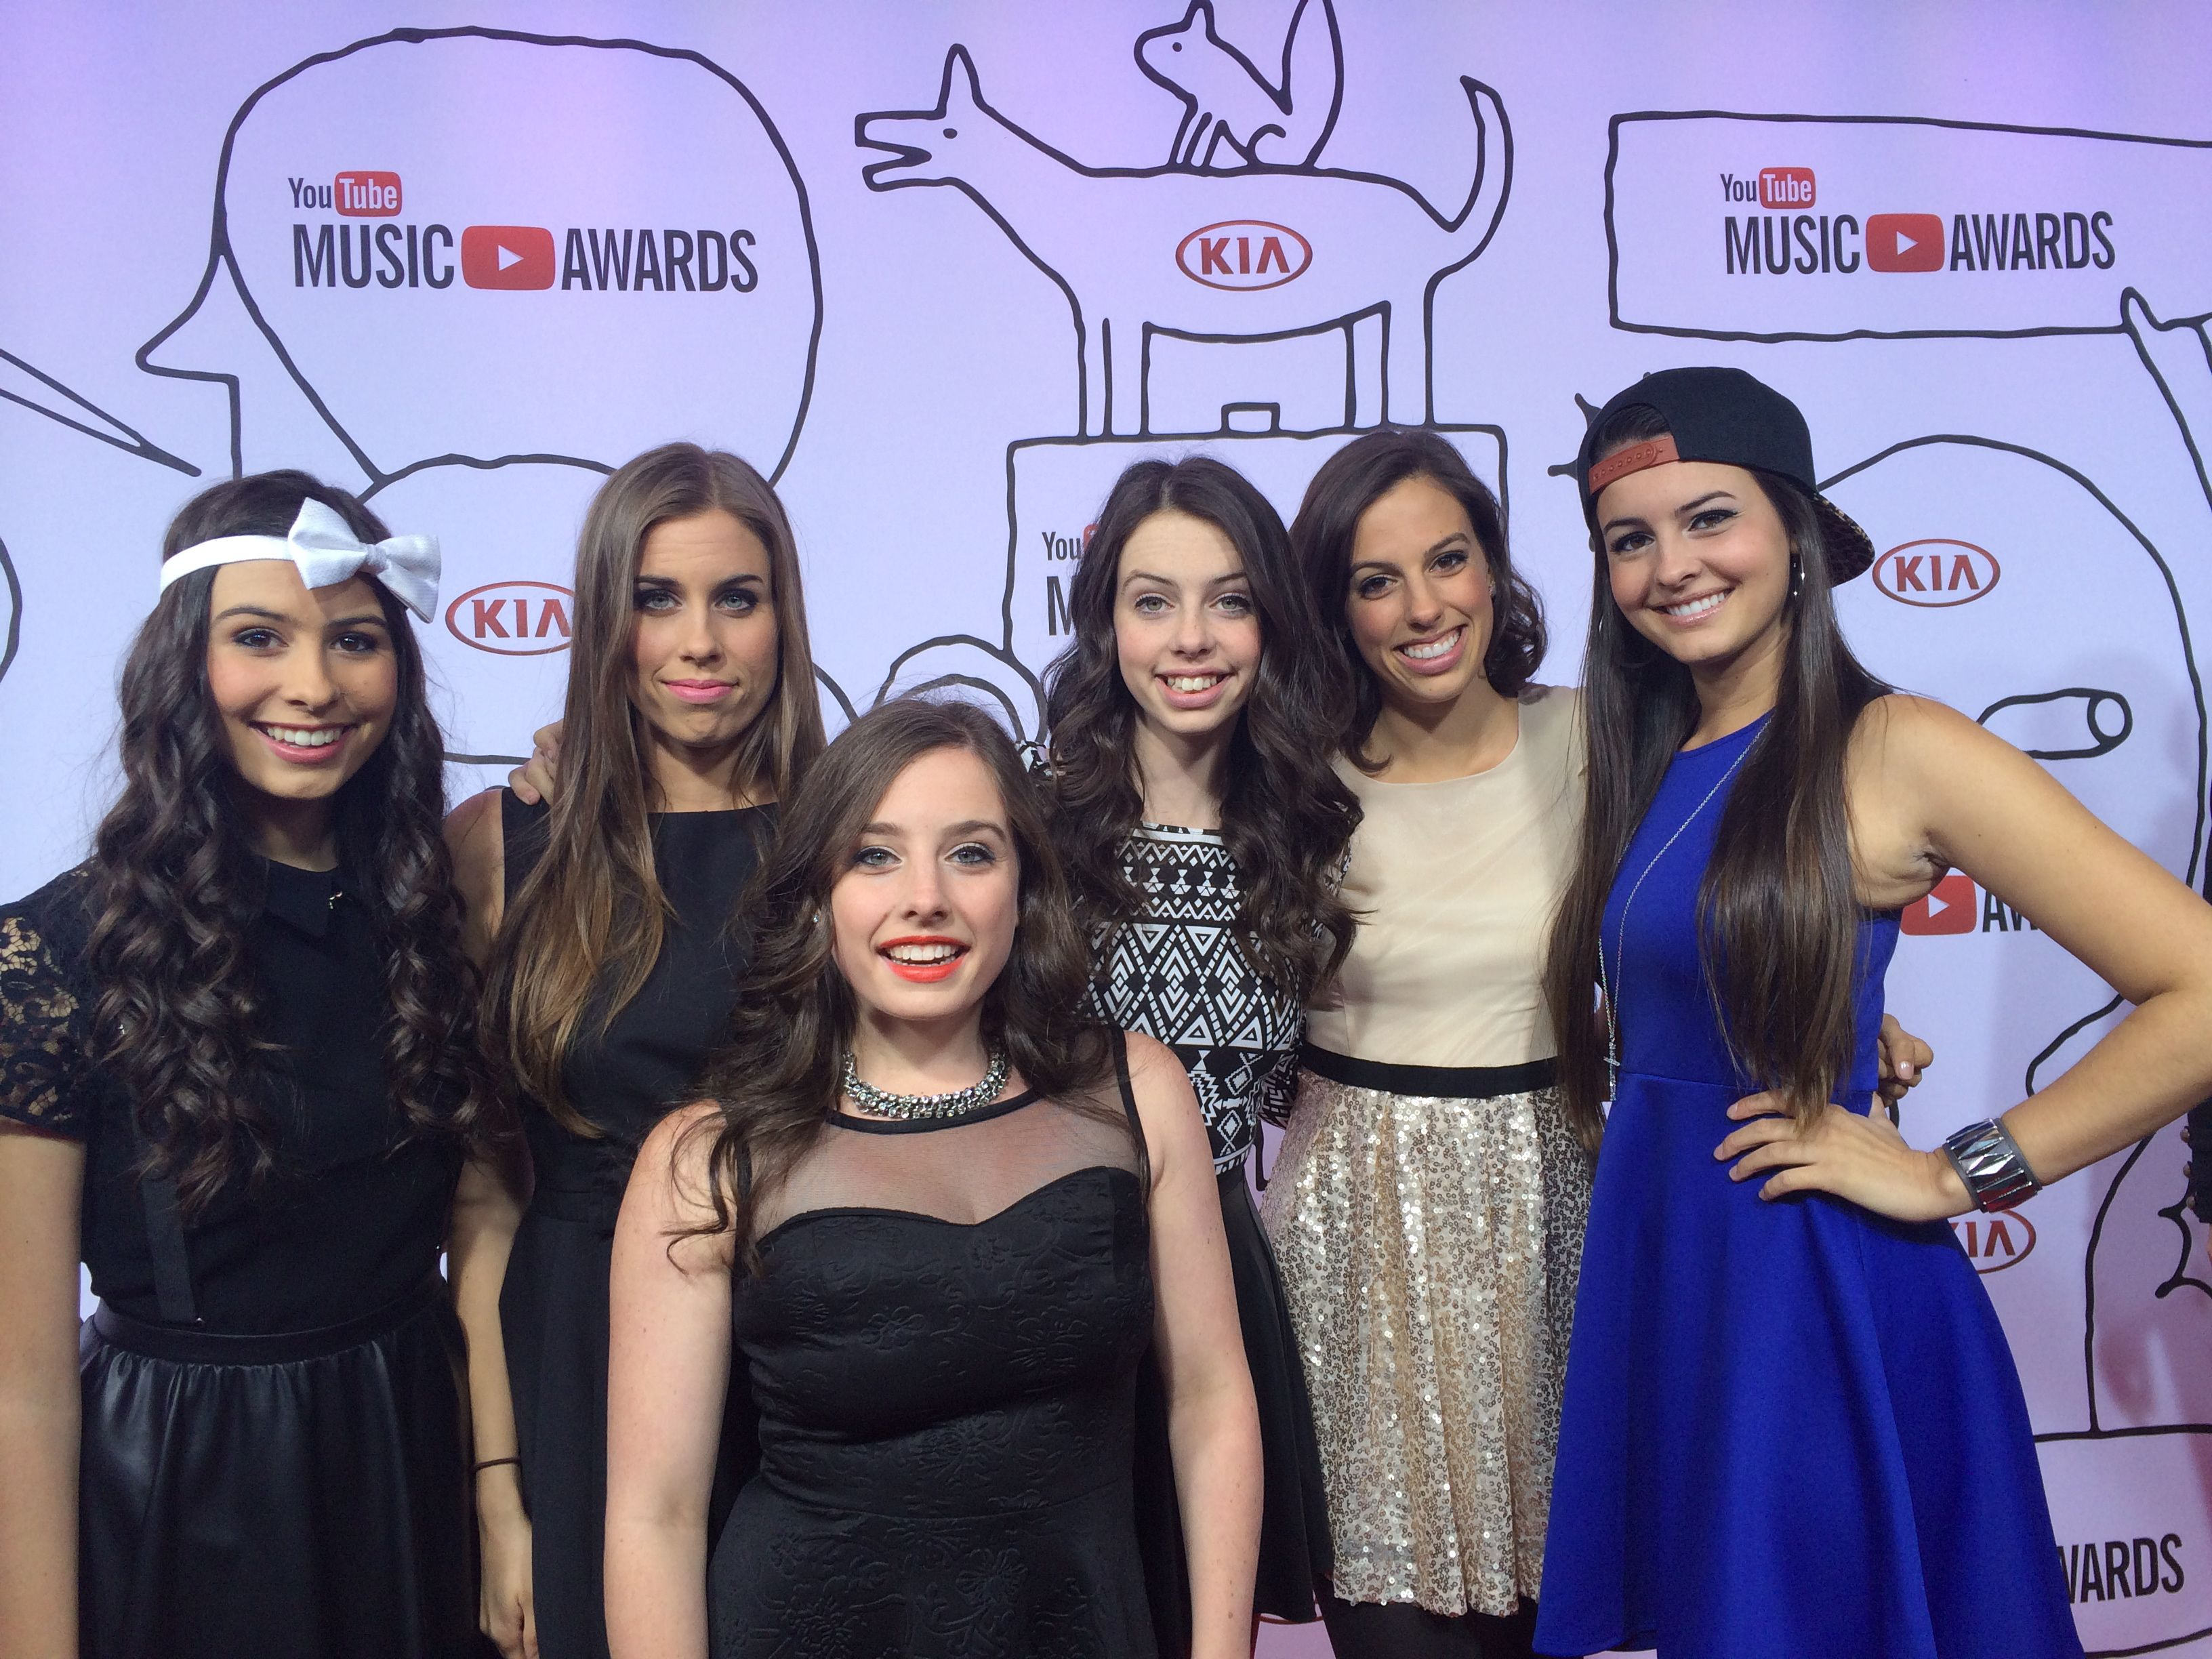 the cimorelli sisters walked the red carpet at the youtube music awards